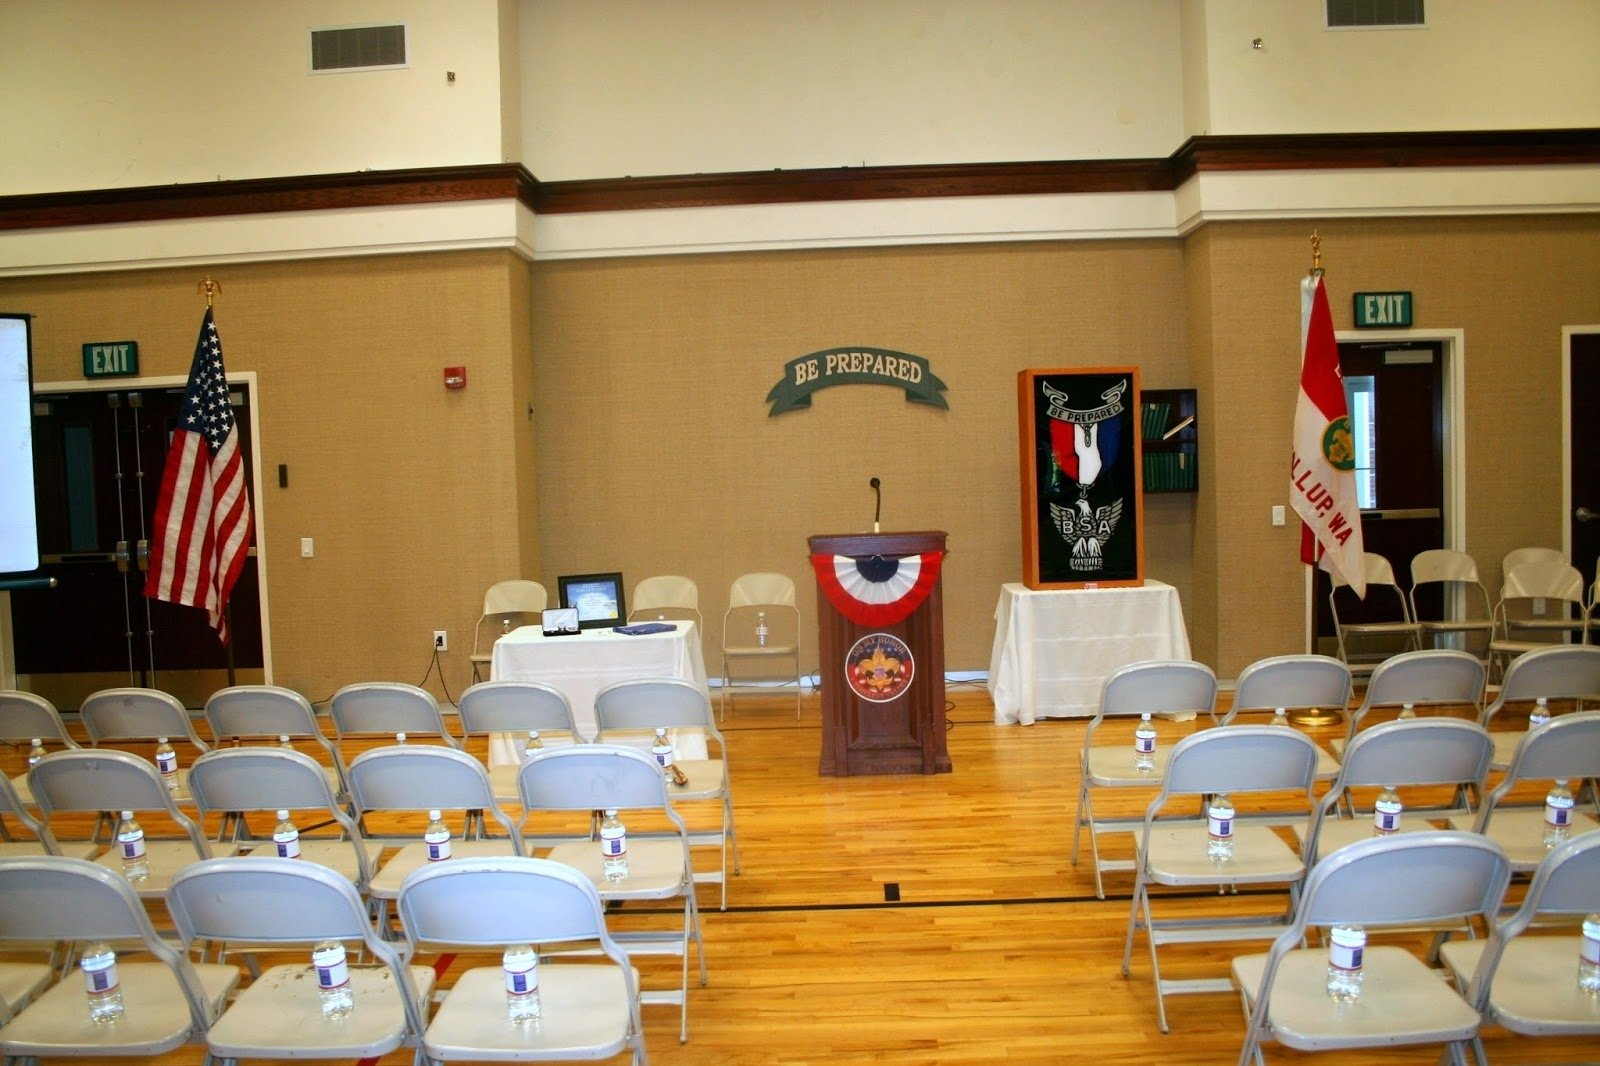 10 Perfect Eagle Court Of Honor Ideas the carver crew an eagle scout court of honor 2 2020